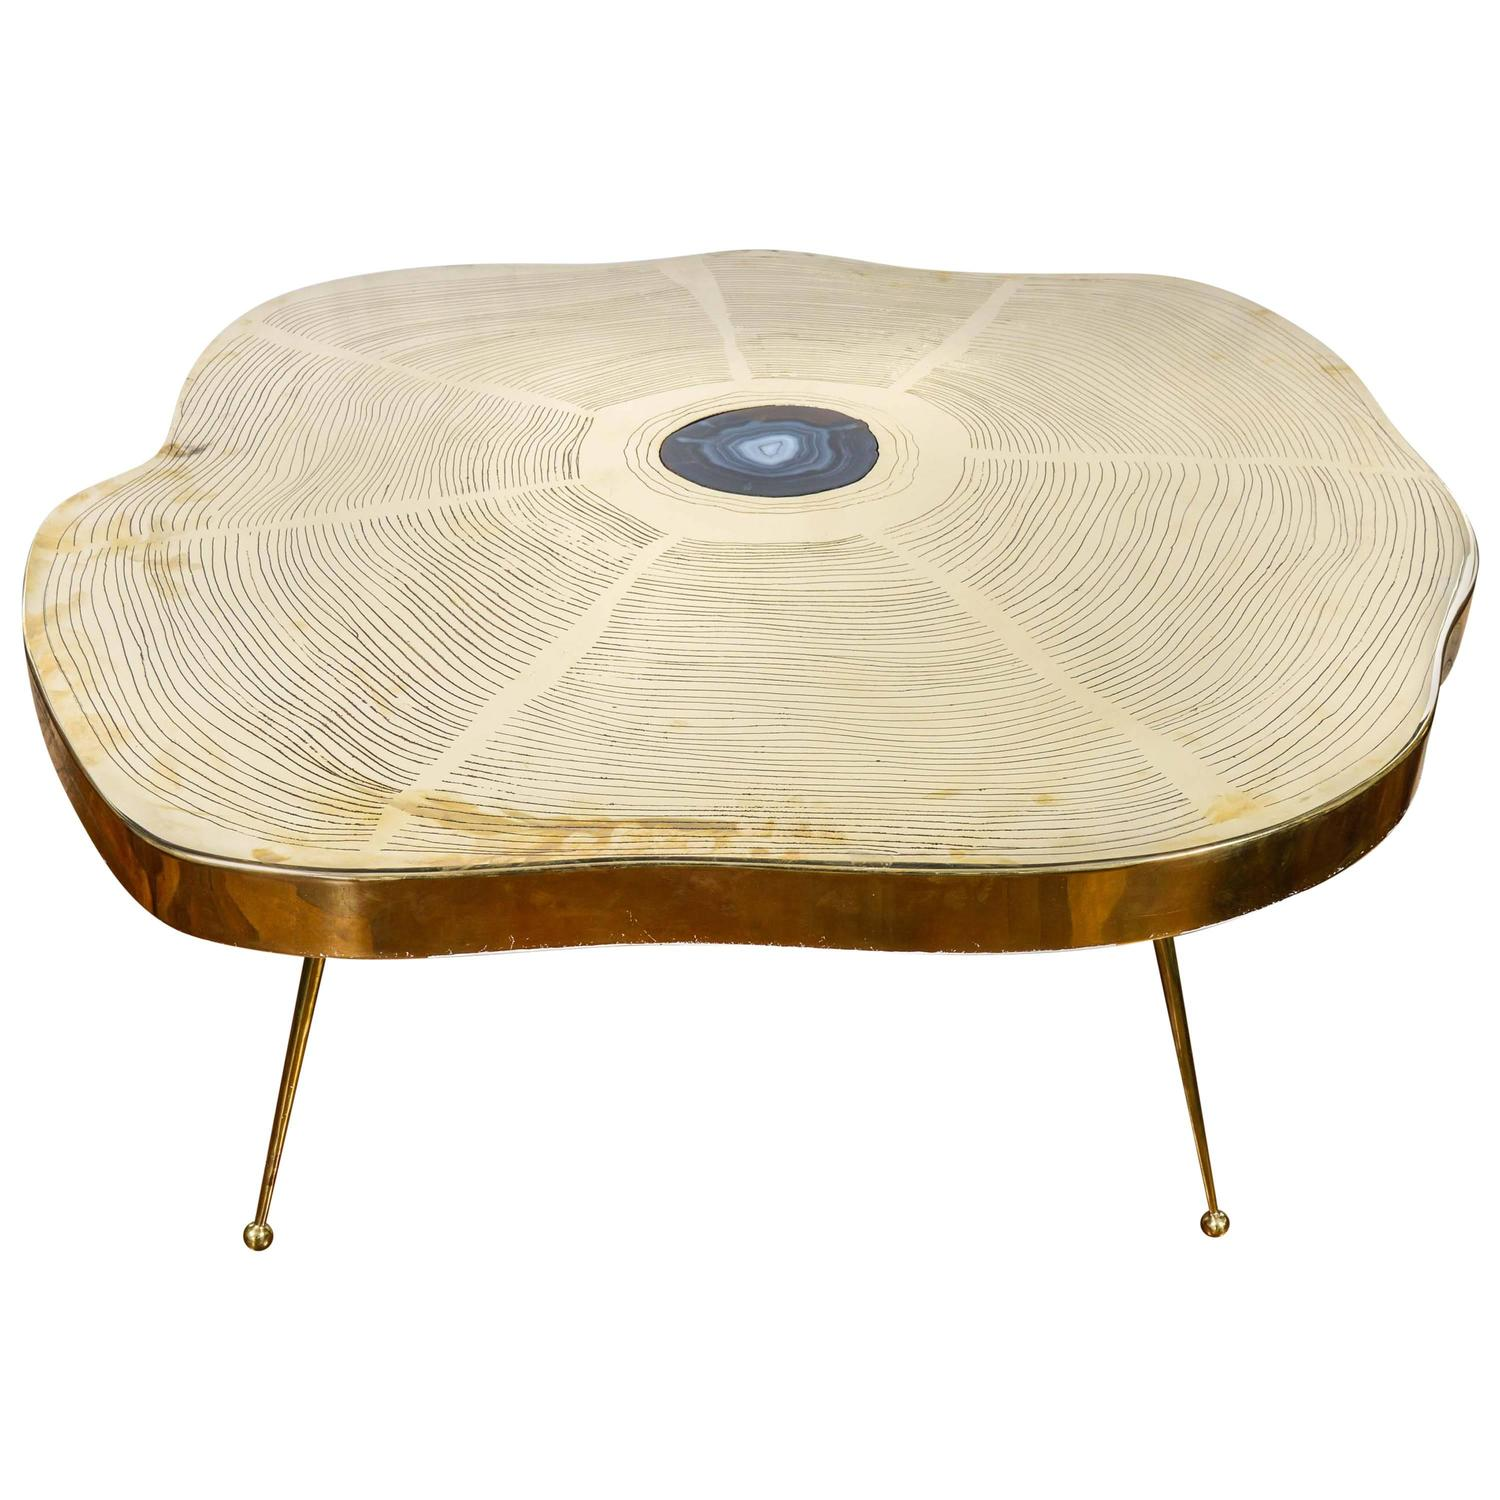 Nice Free Form Brass And Agate Coffee Table For Sale At 1stdibs